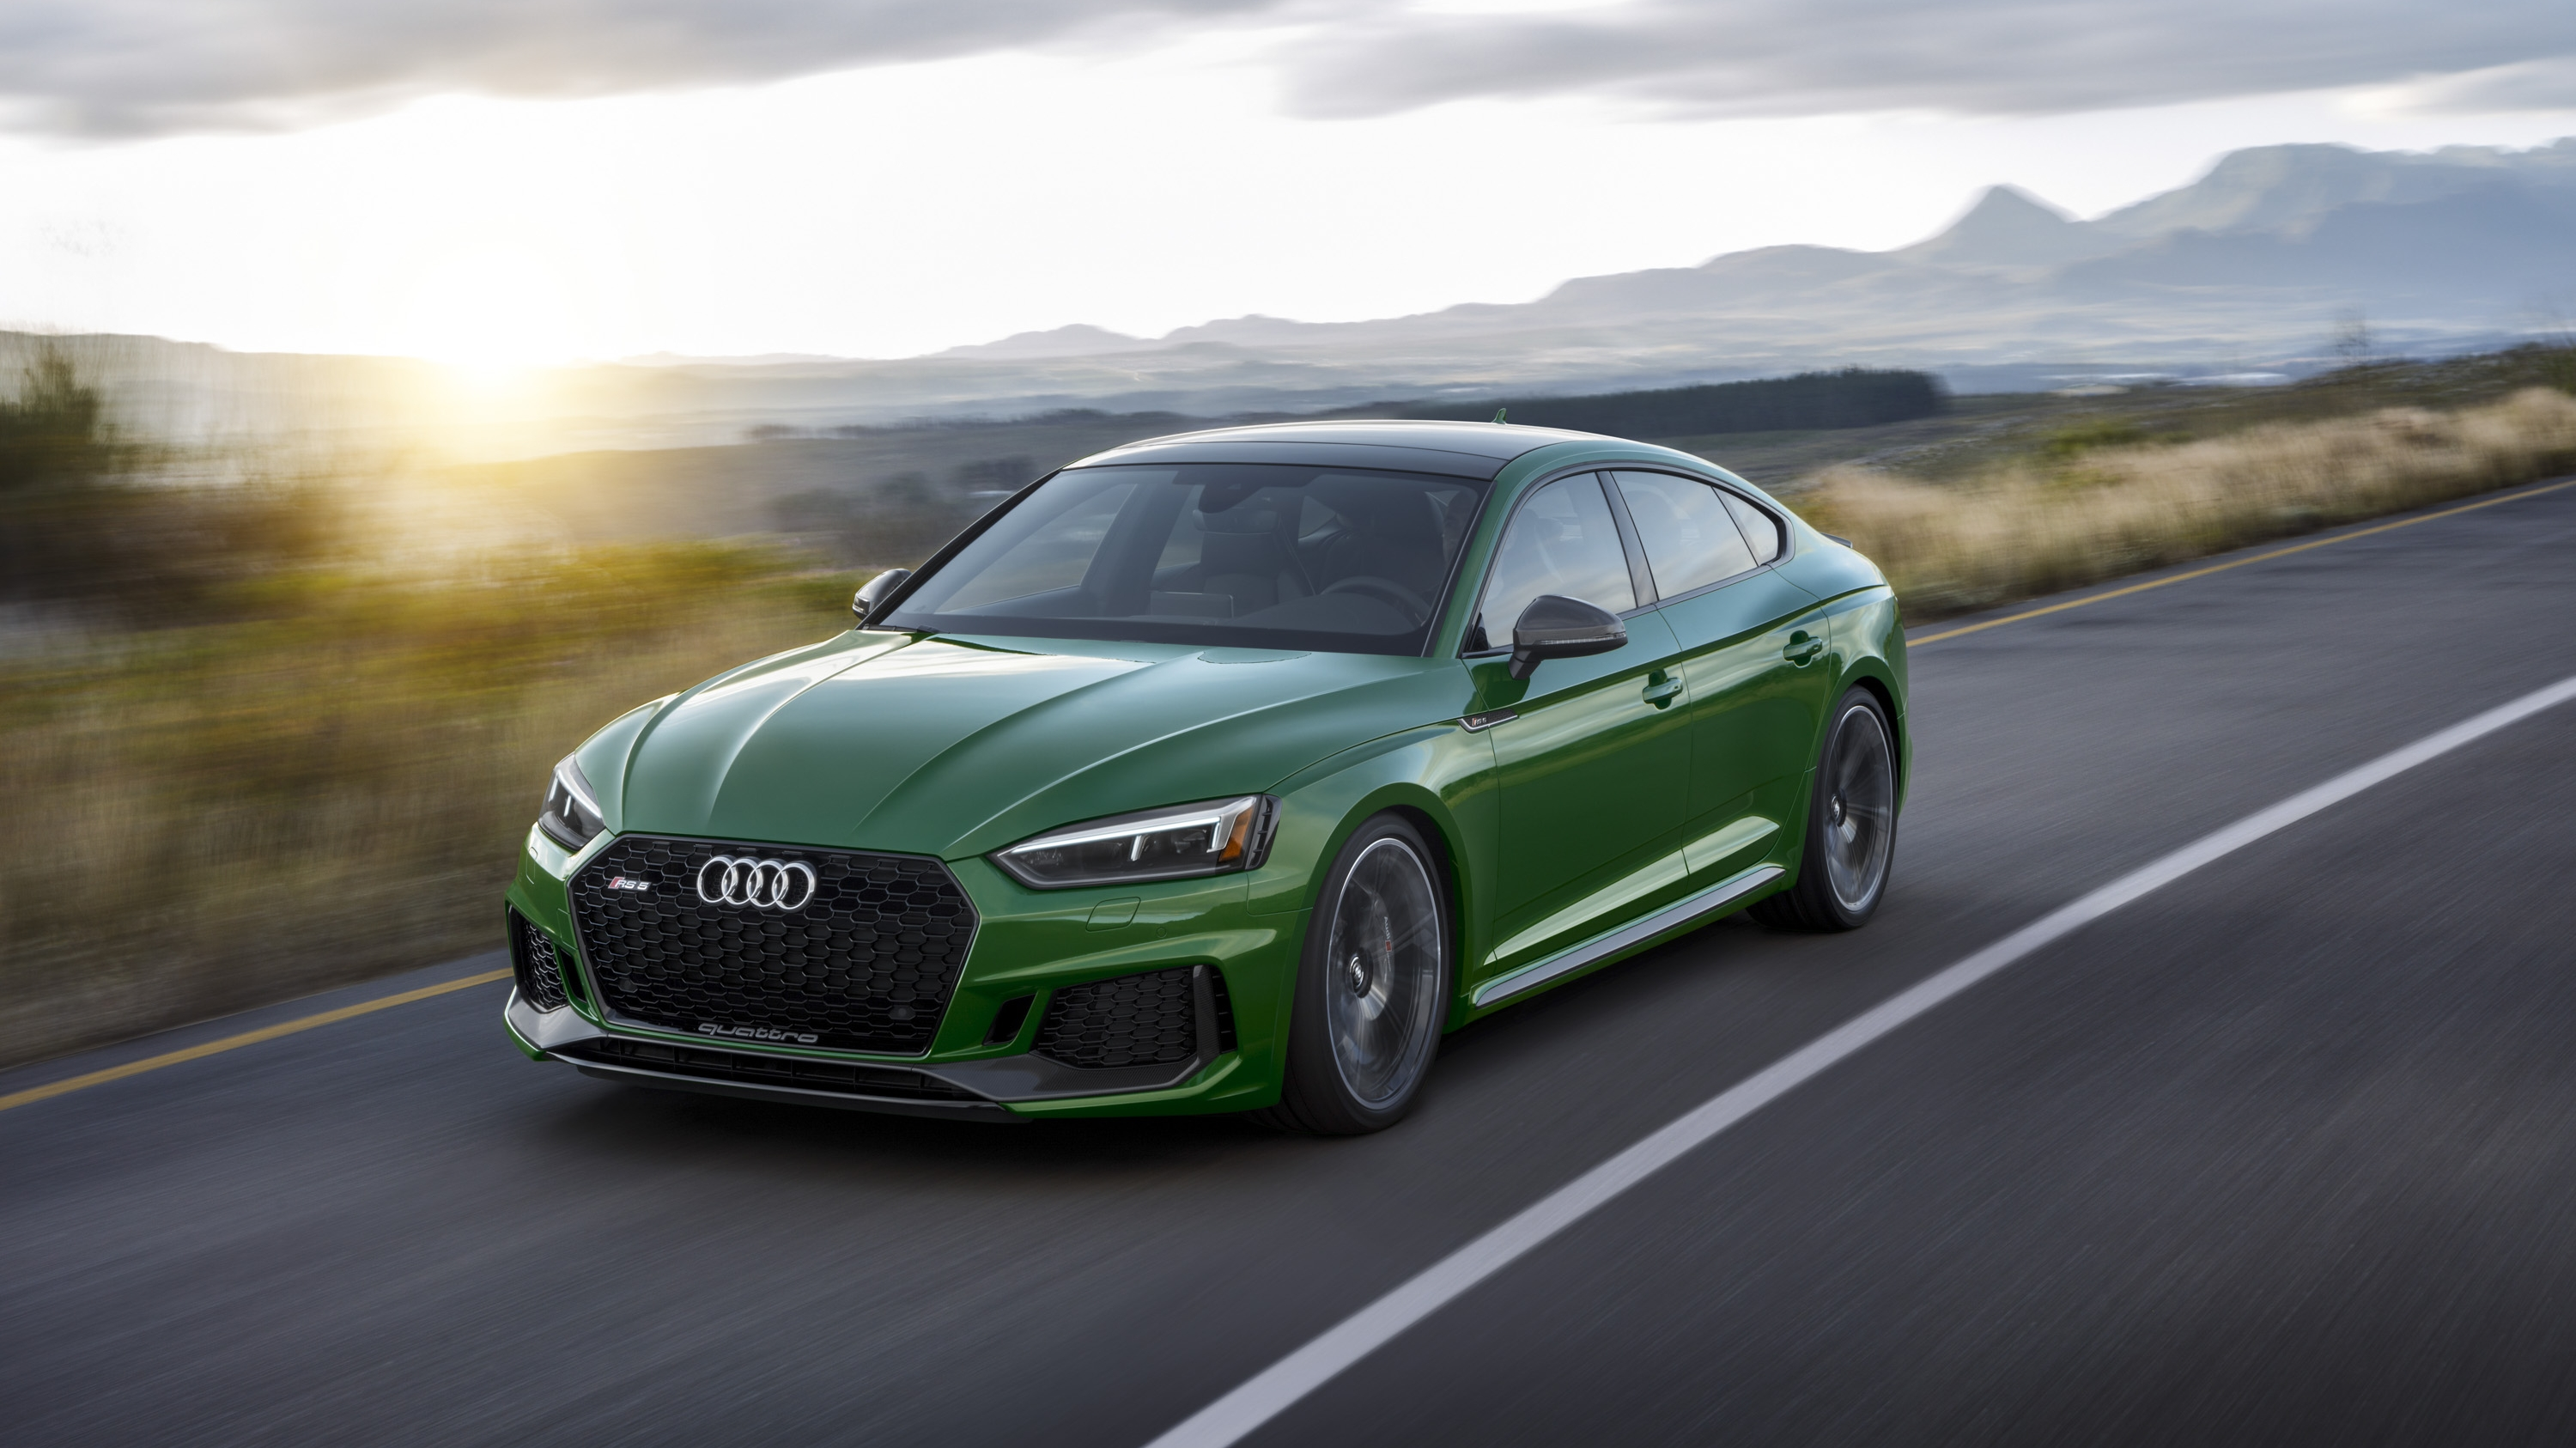 2019 Audi Rs5 Sportback Pictures Photos Wallpapers And